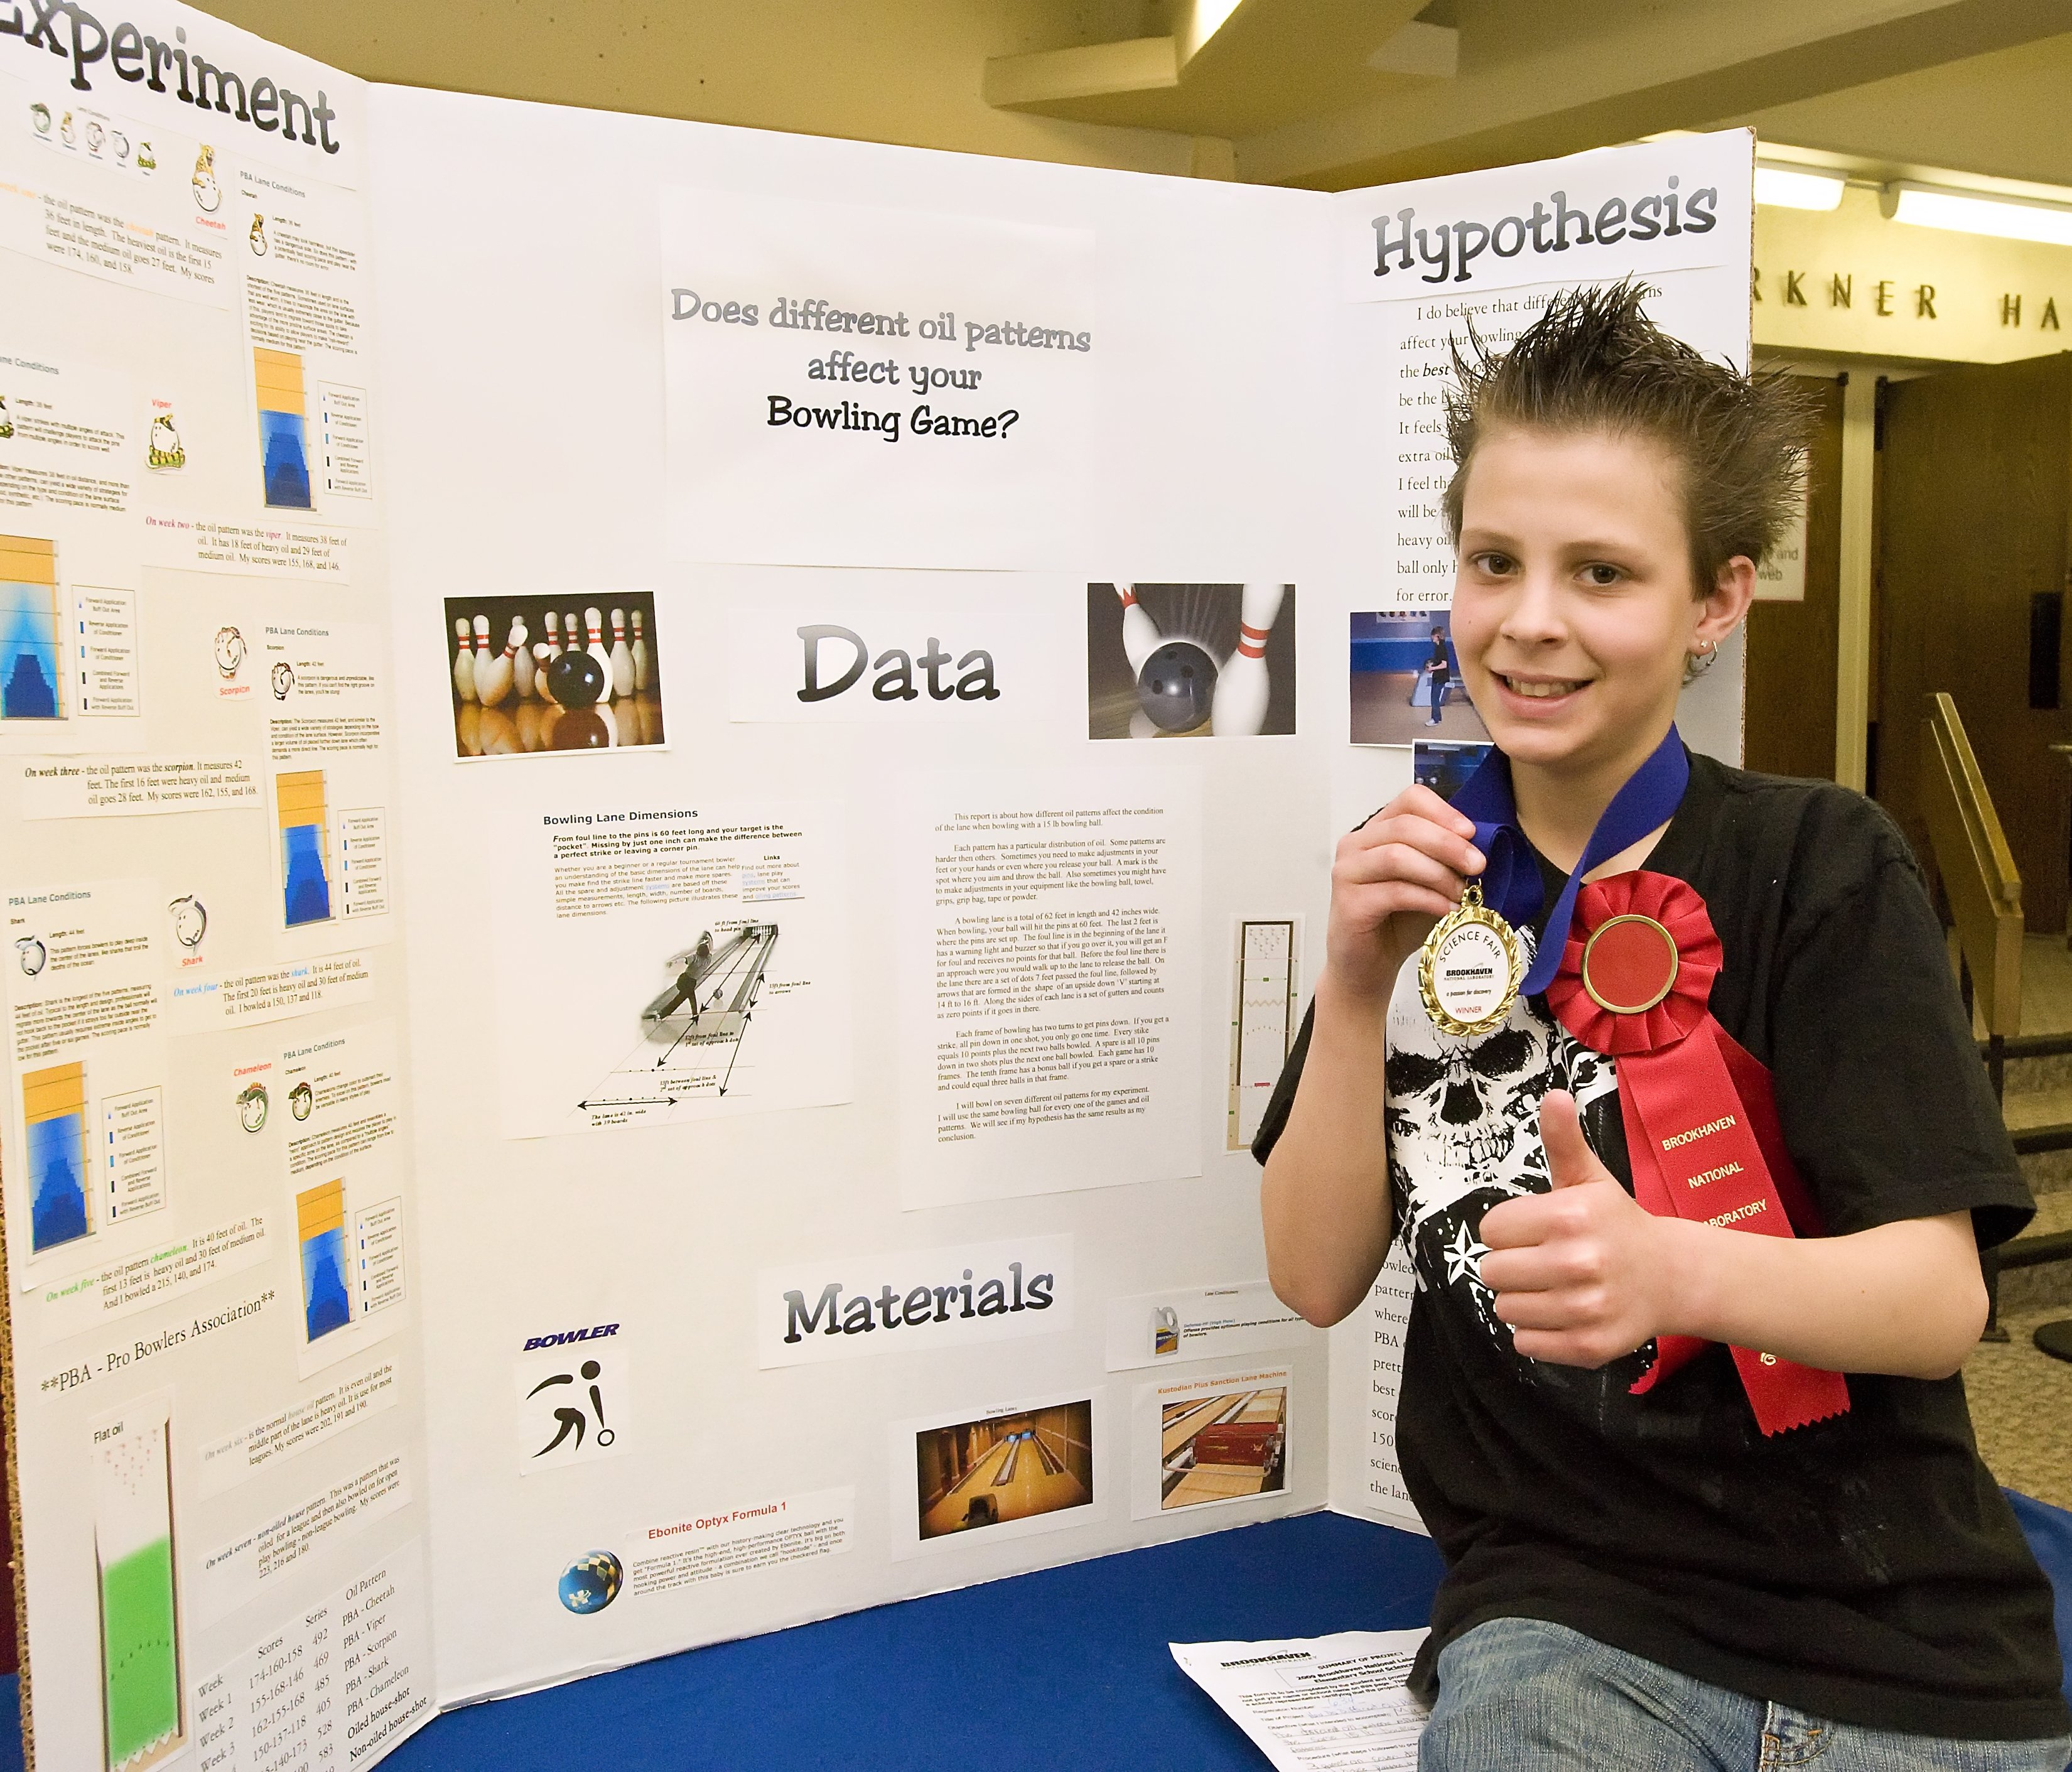 10 Elegant Ideas For 5Th Grade Science Project from ant control to wind energy winning projects at brookhaven 32 2020